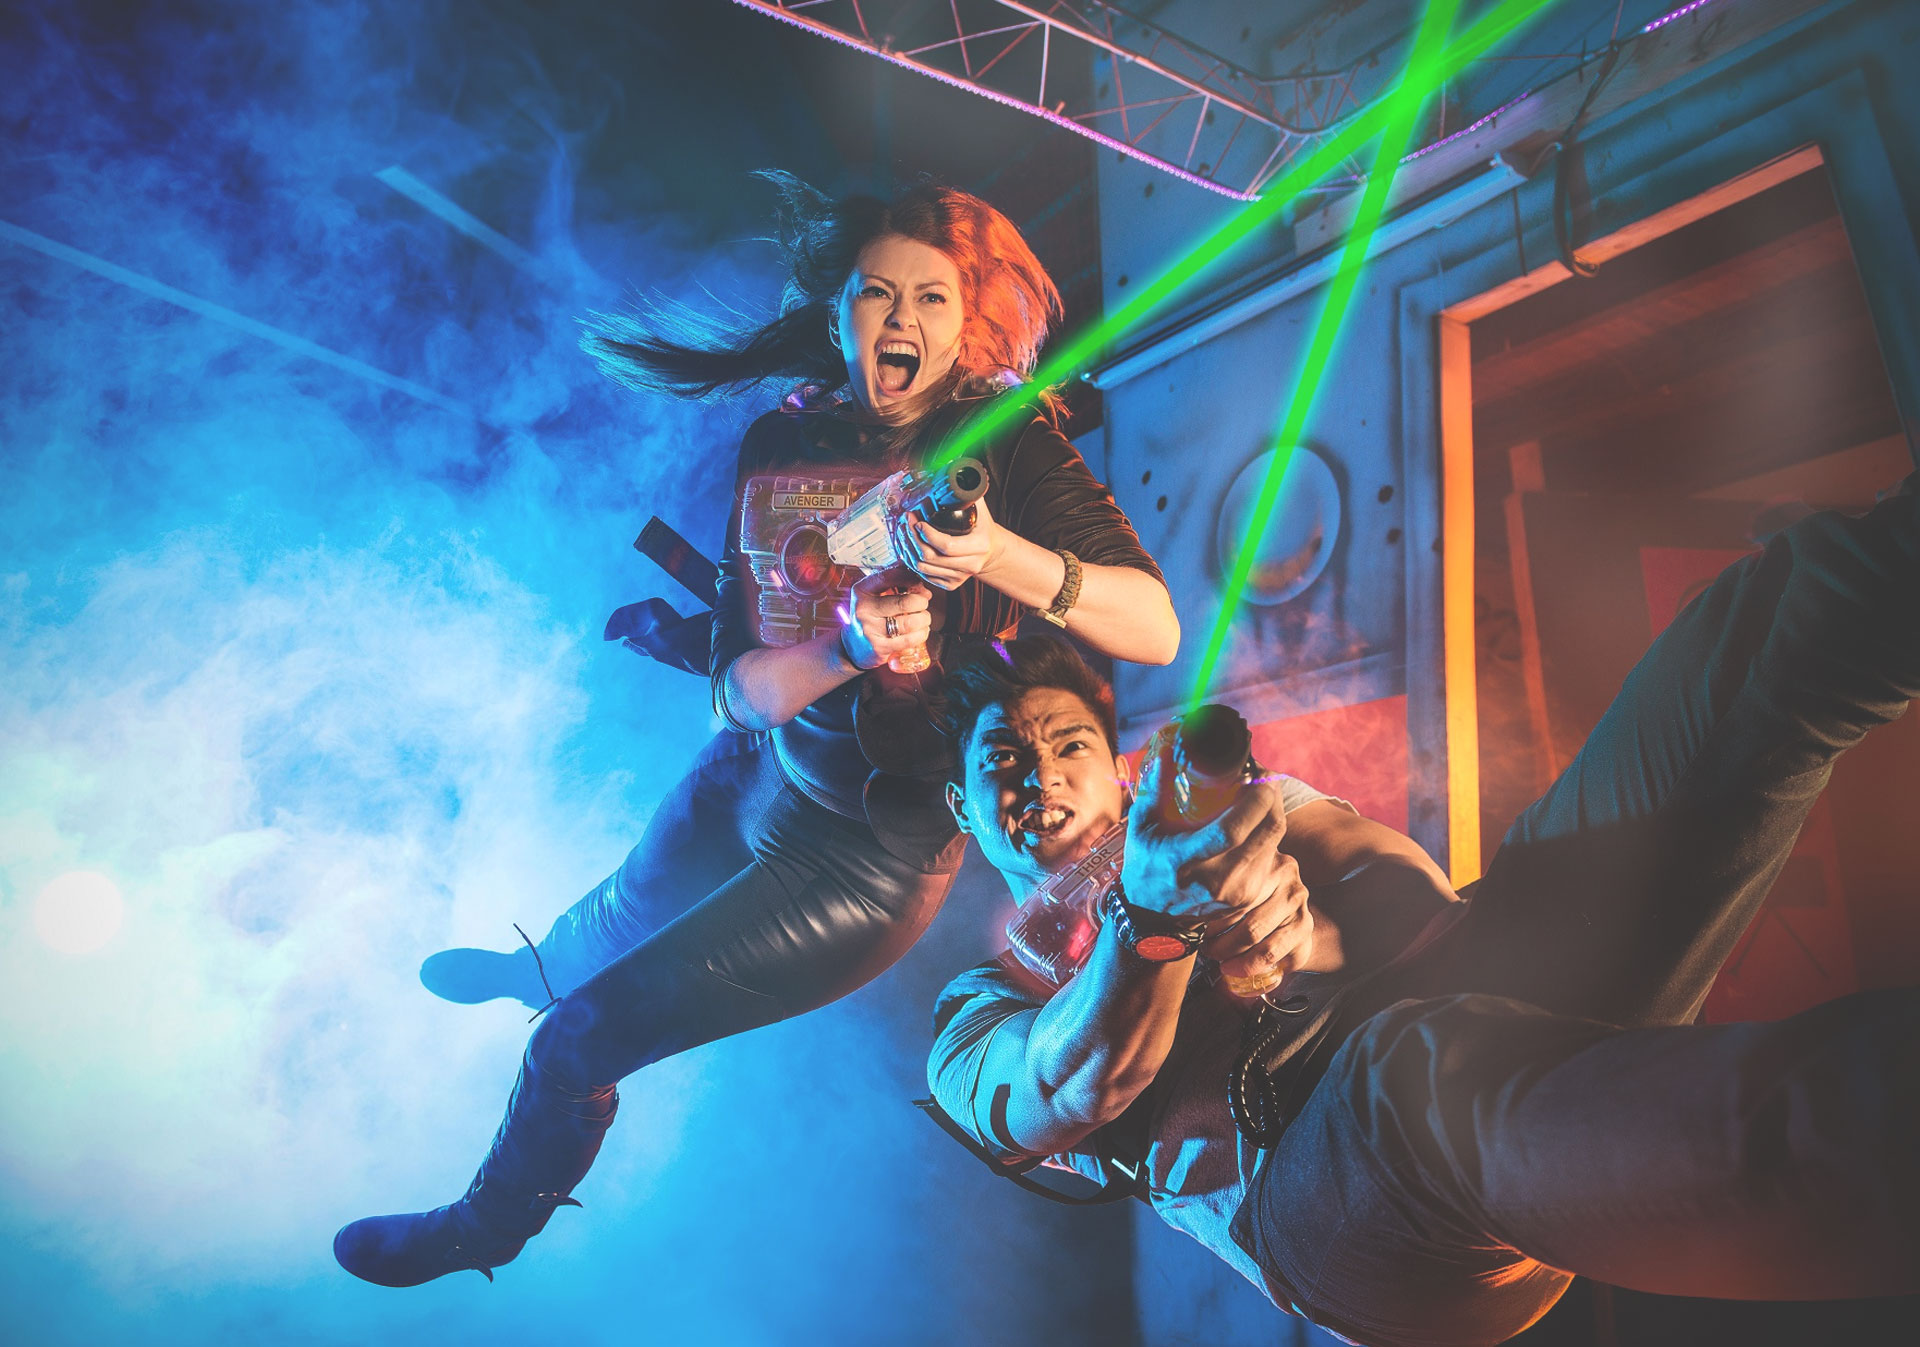 Action packed fun at Laser City.